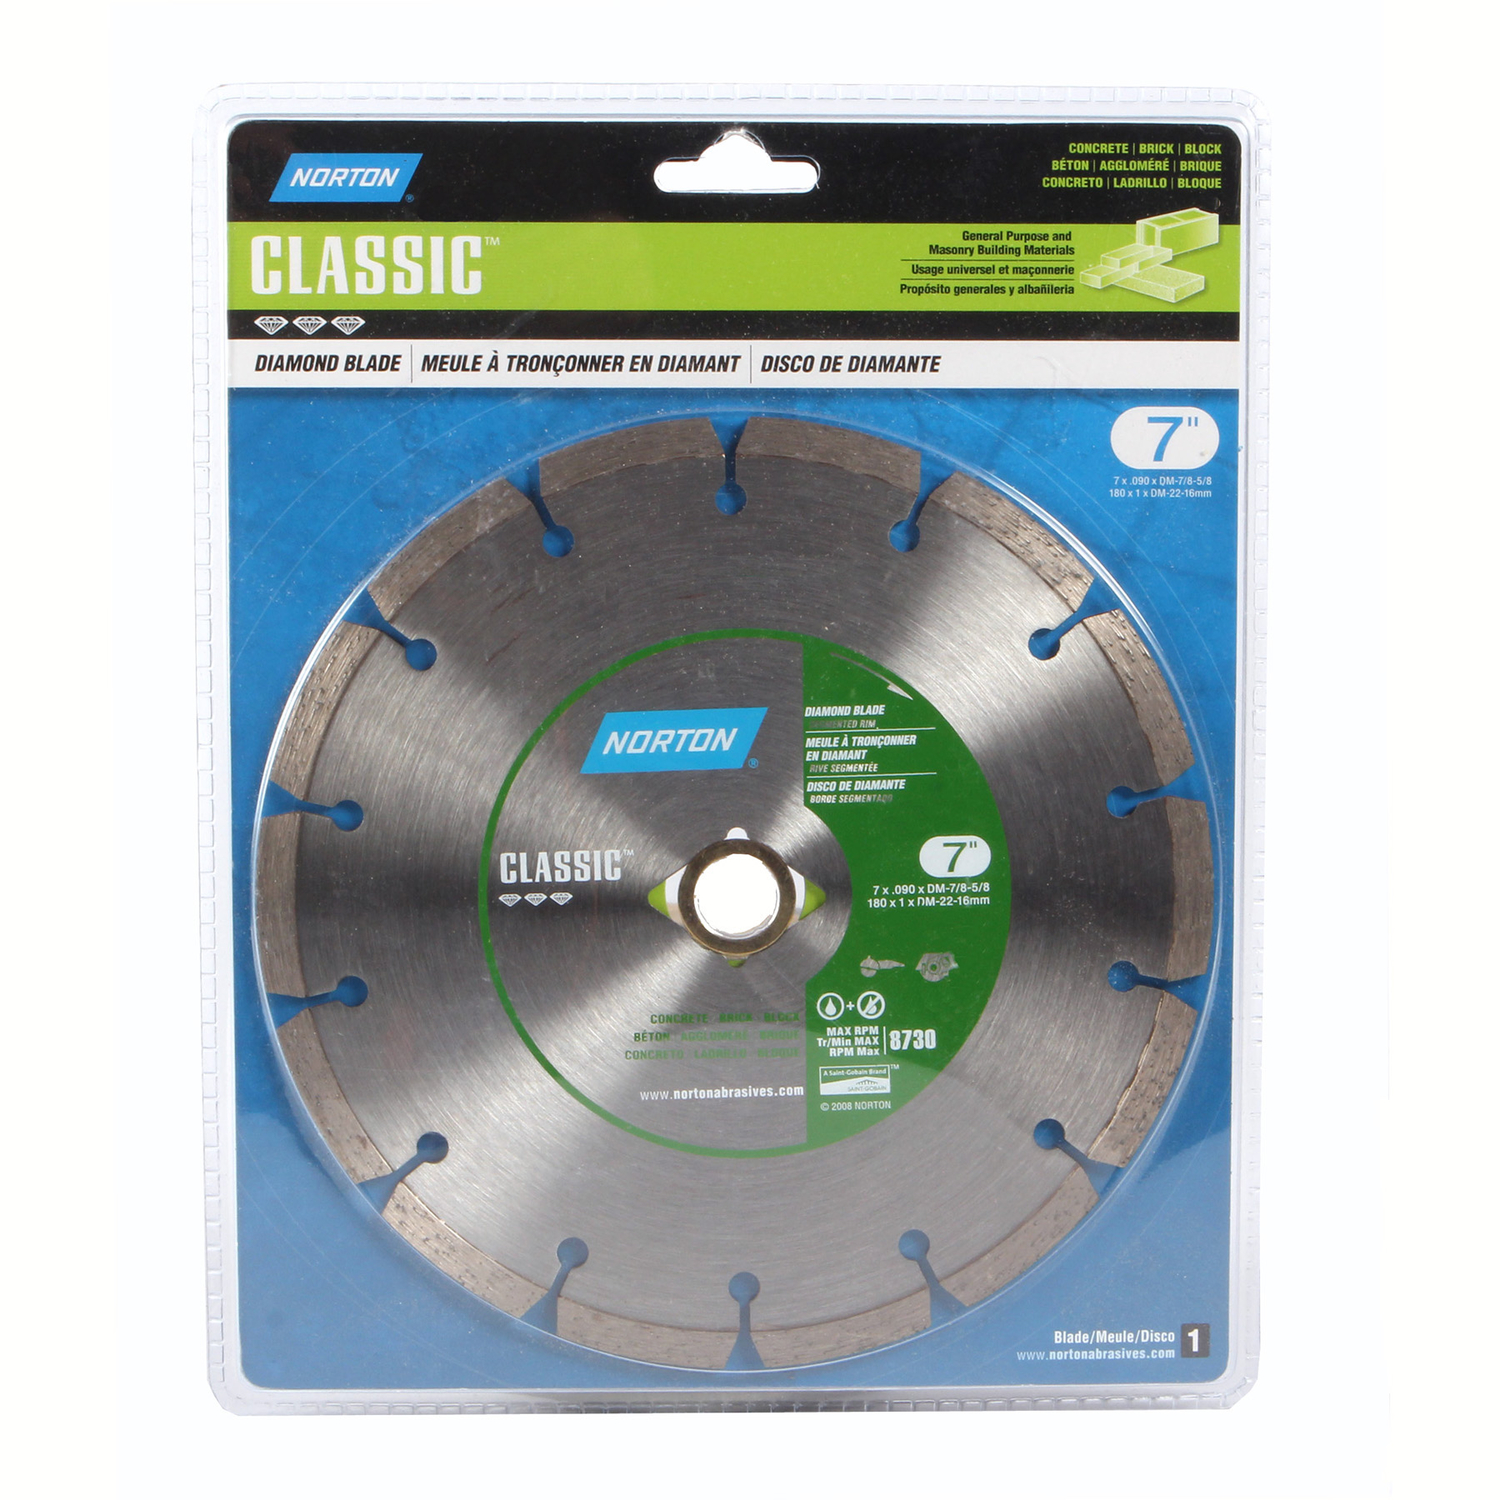 Norton  Classic  0.09 in.  7  Classic  Segmented Rim Diamond Saw Blade  1 pk Diamond  5/8 and 7/8 in